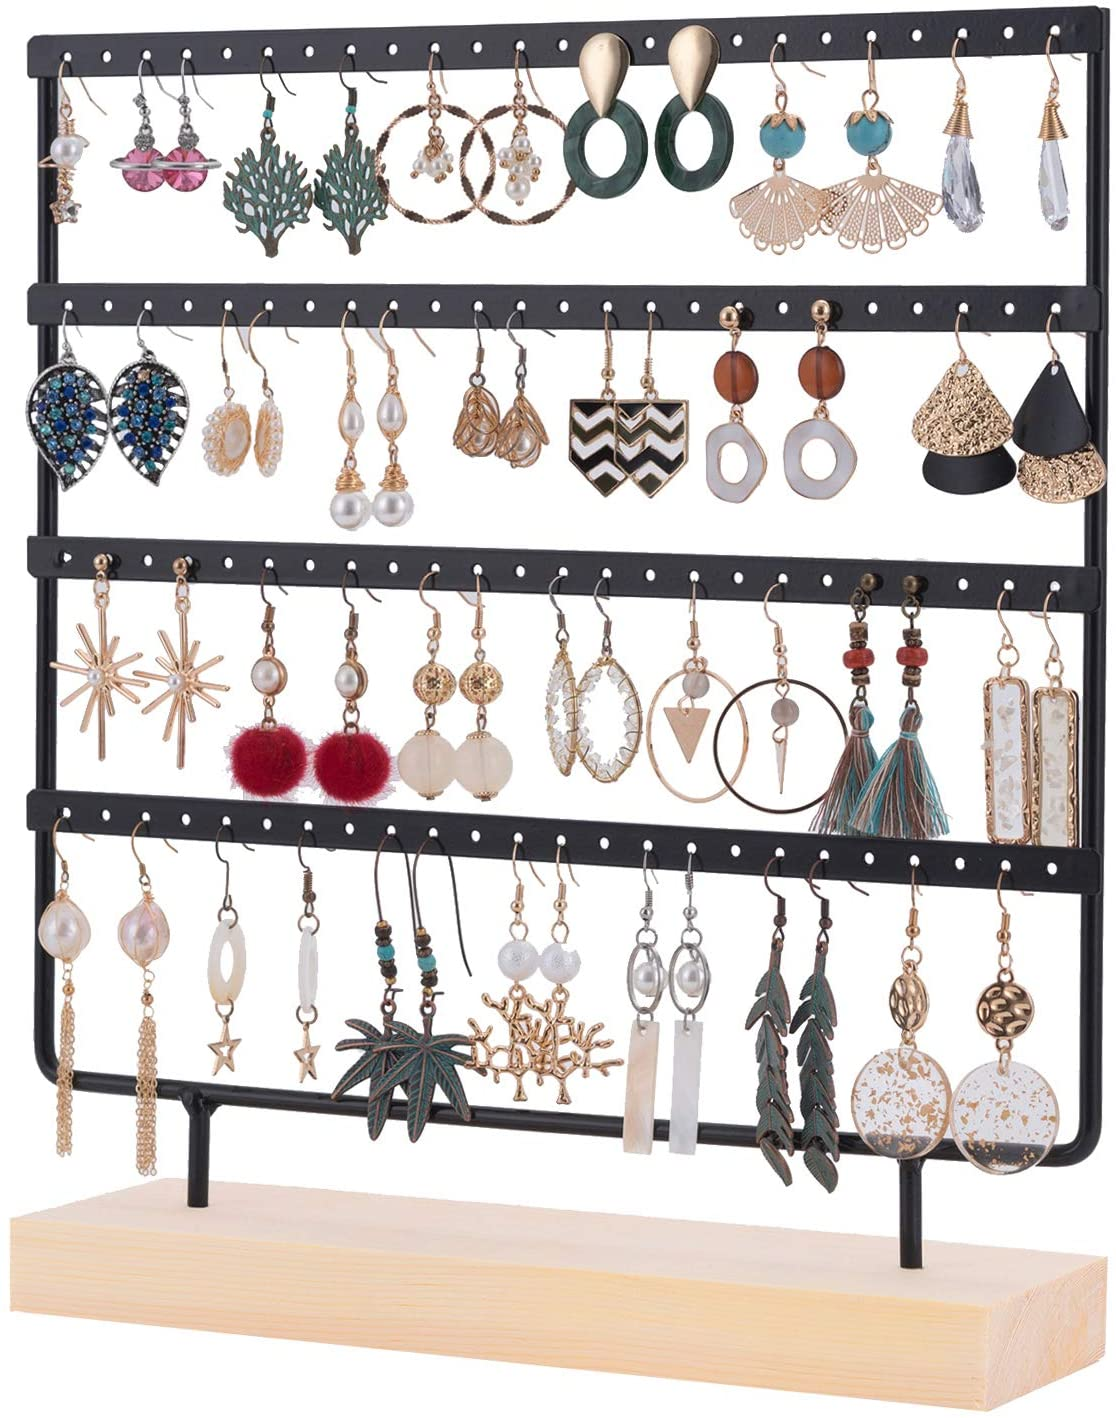 Earring Stand Holder 4 Tier Earring Display Stand Earring Tree Stand Rack Hanger Jewelry Display Stand Holder Organizer Tower with Tray/Dish for Earrings Studs 96 Holes